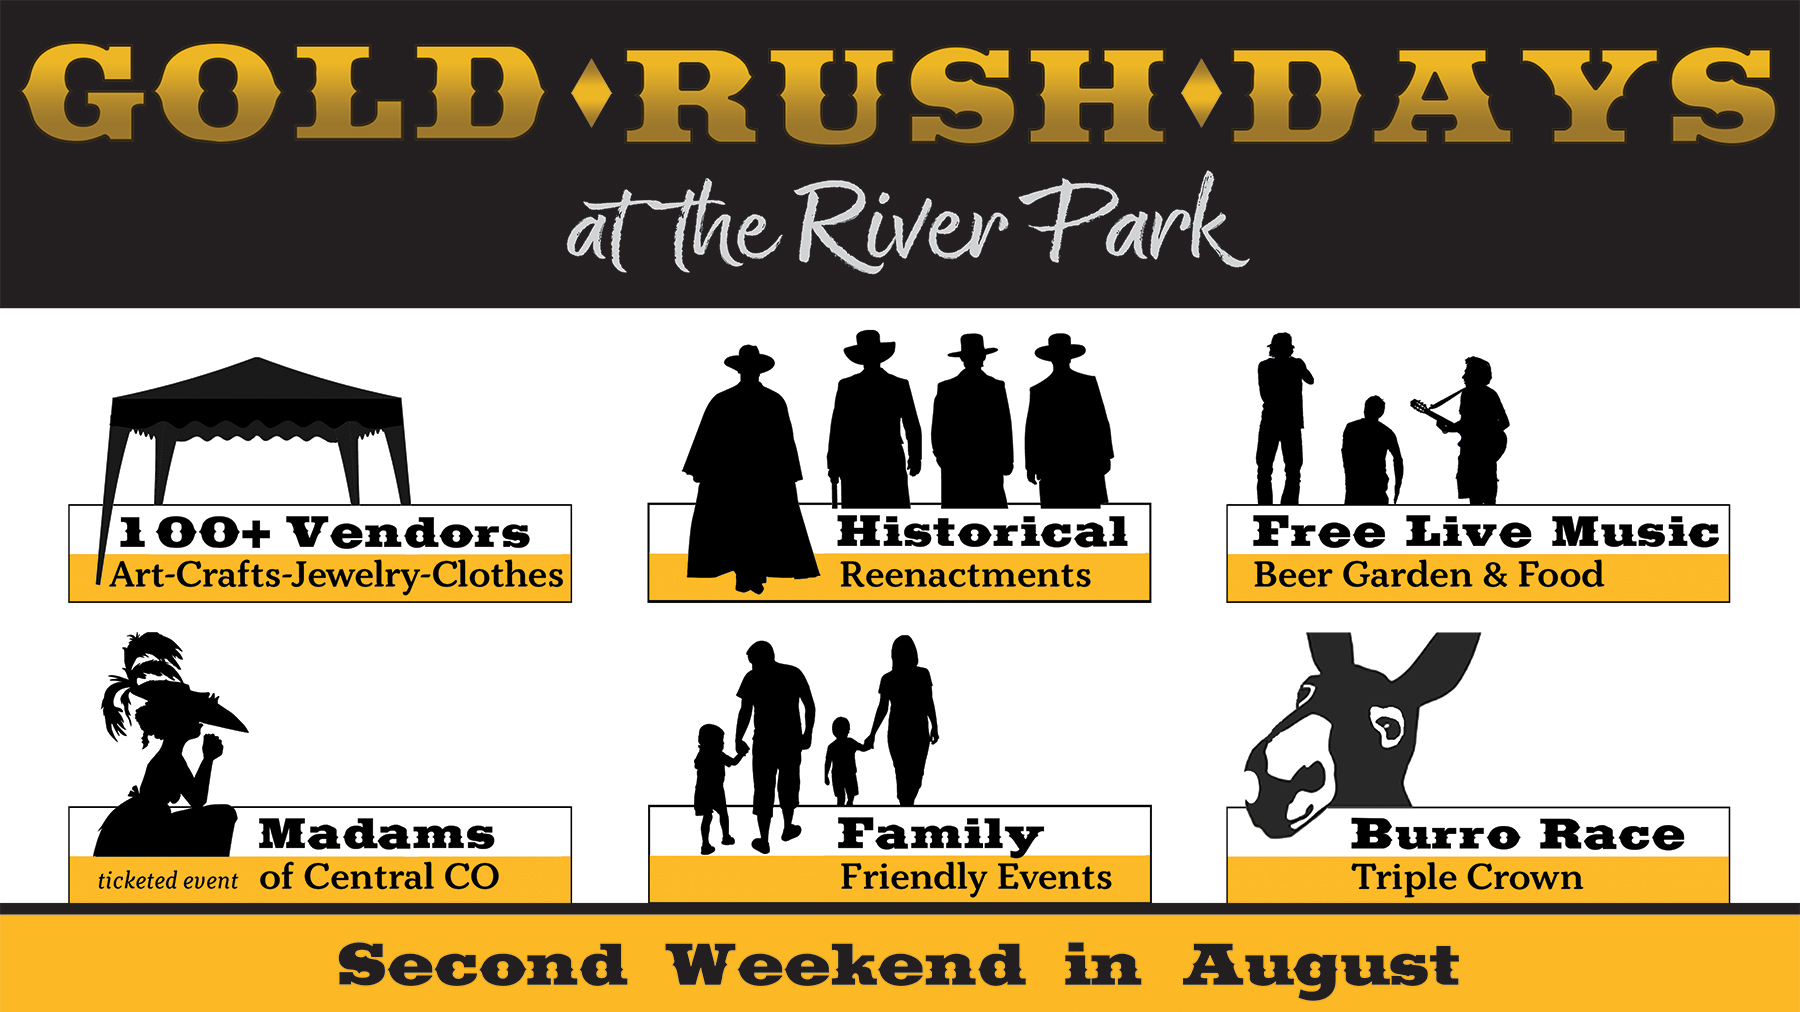 GOLD RUSH Days   Buena Vista Welcome Center & Chamber of